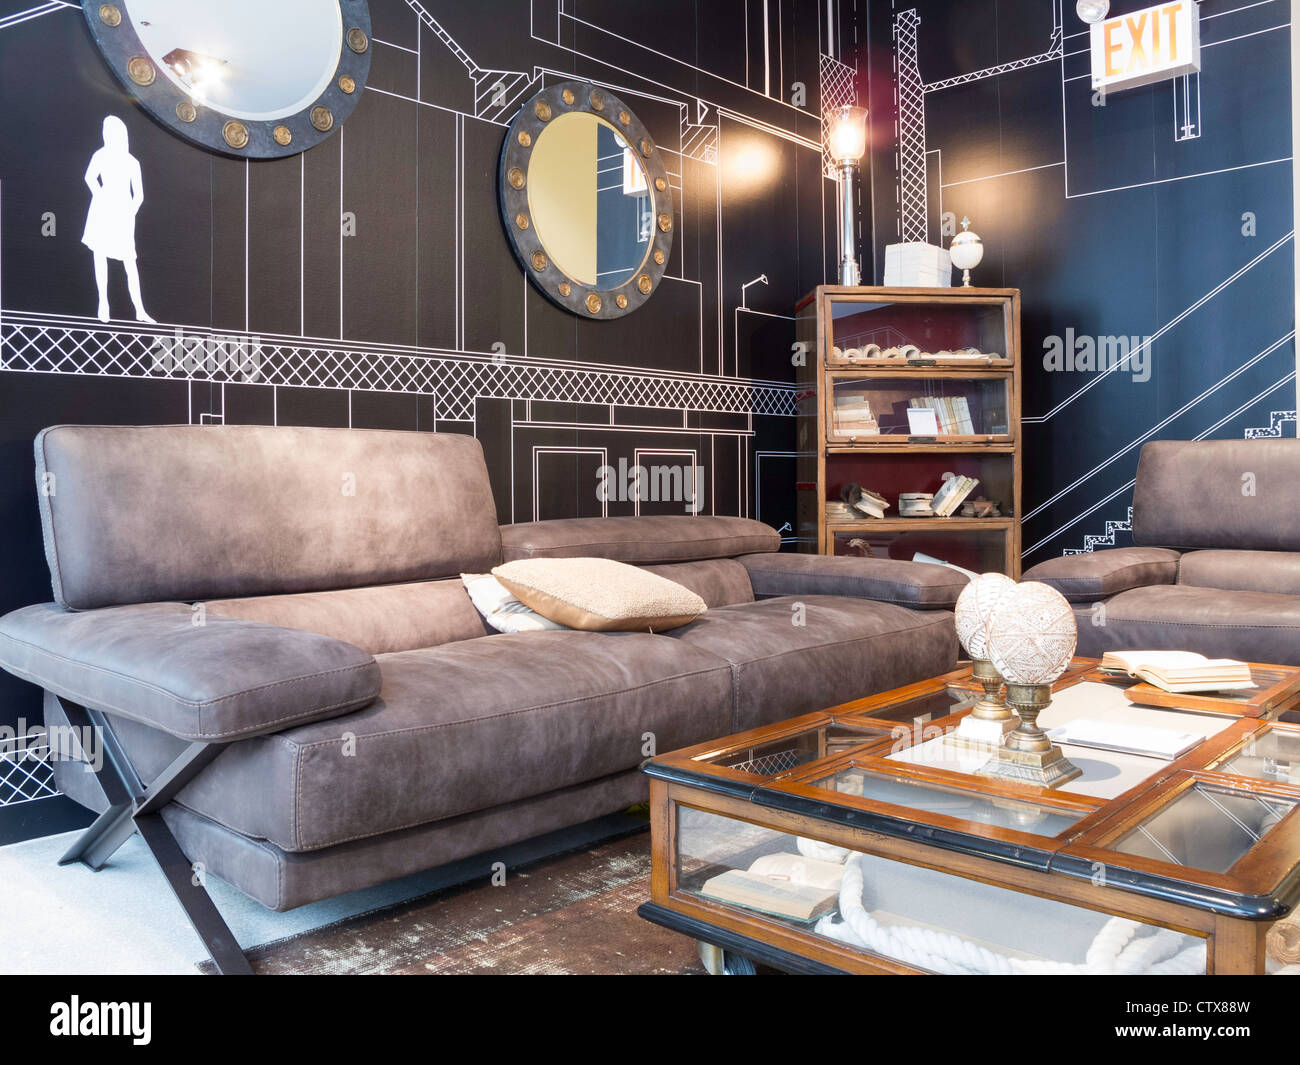 roche bobois furniture store interior nyc stock photo 49749753 alamy. Black Bedroom Furniture Sets. Home Design Ideas